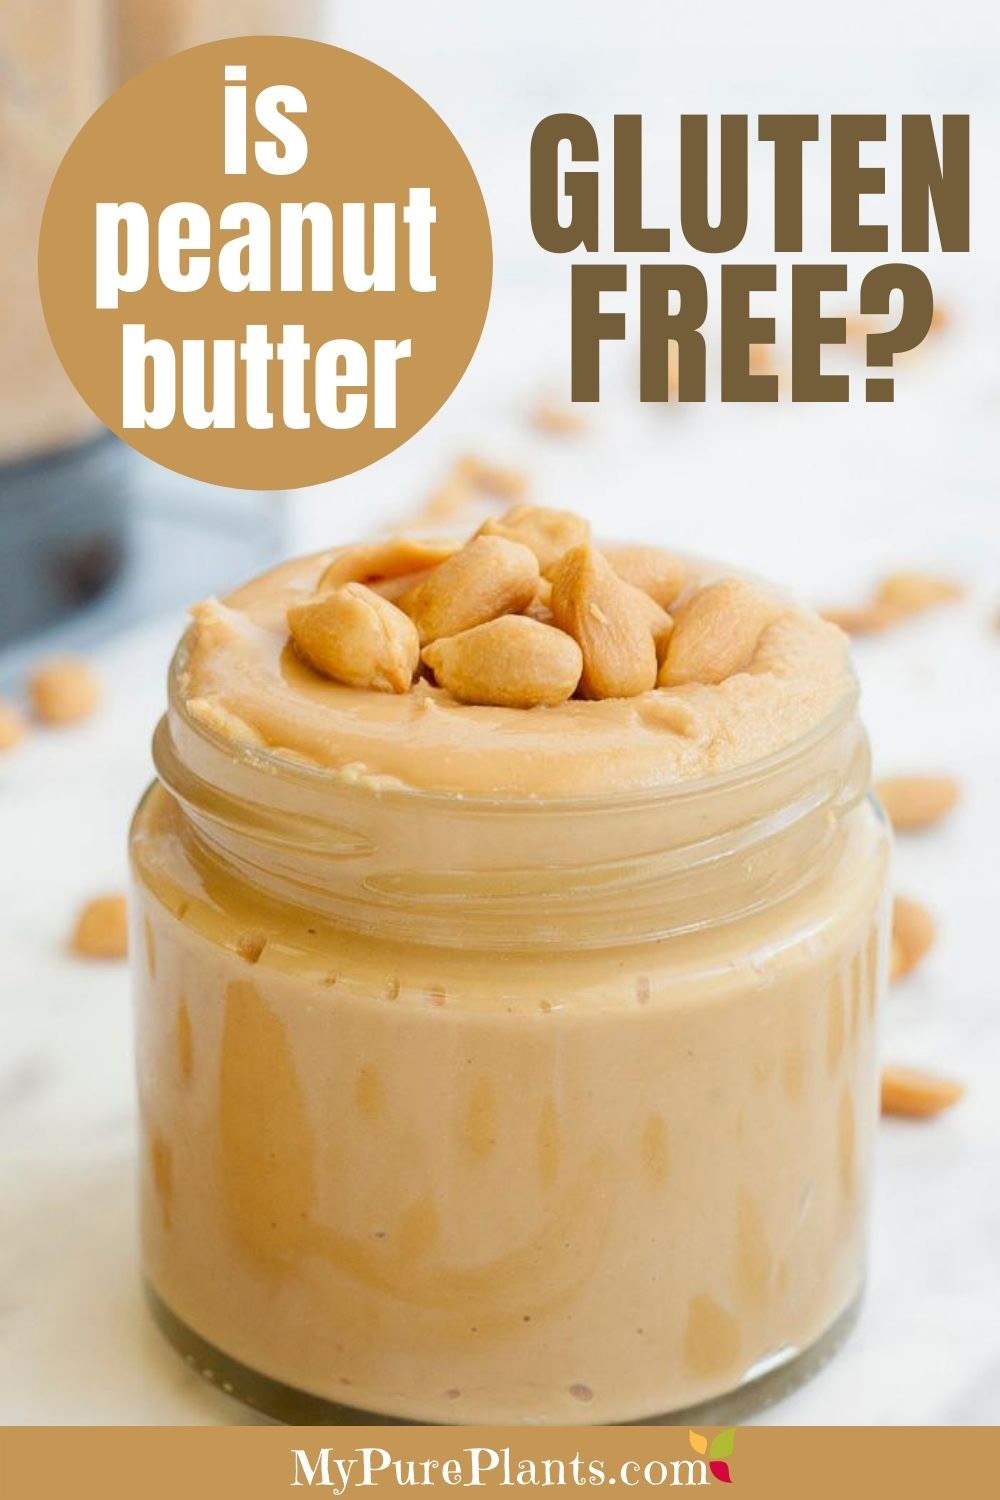 A small jar of light brown spread topped with peanuts with a text above saying is peanut butter gluten-free